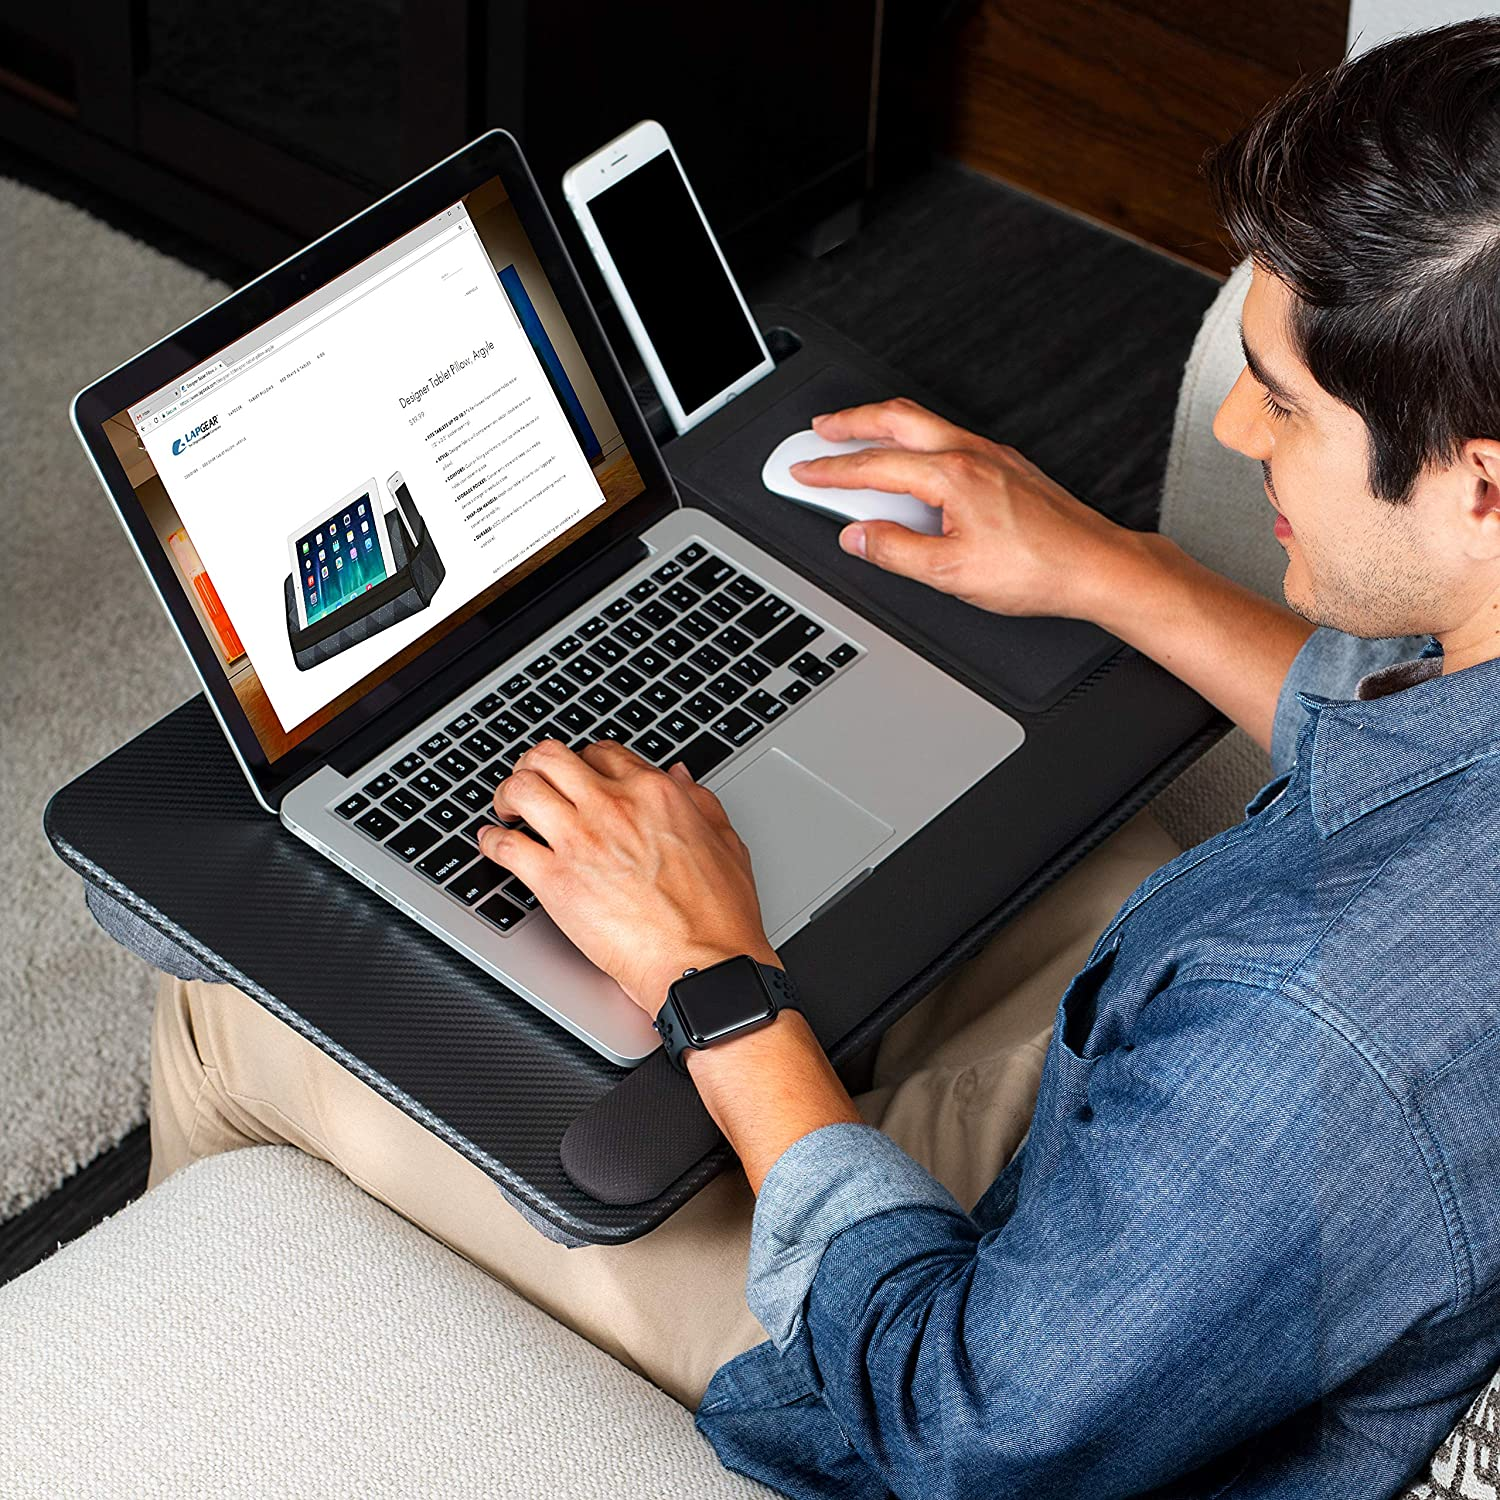 Mouse Pad, and Phone Holder - Black Carbon - Fits Up To 15.6 Inch Laptops